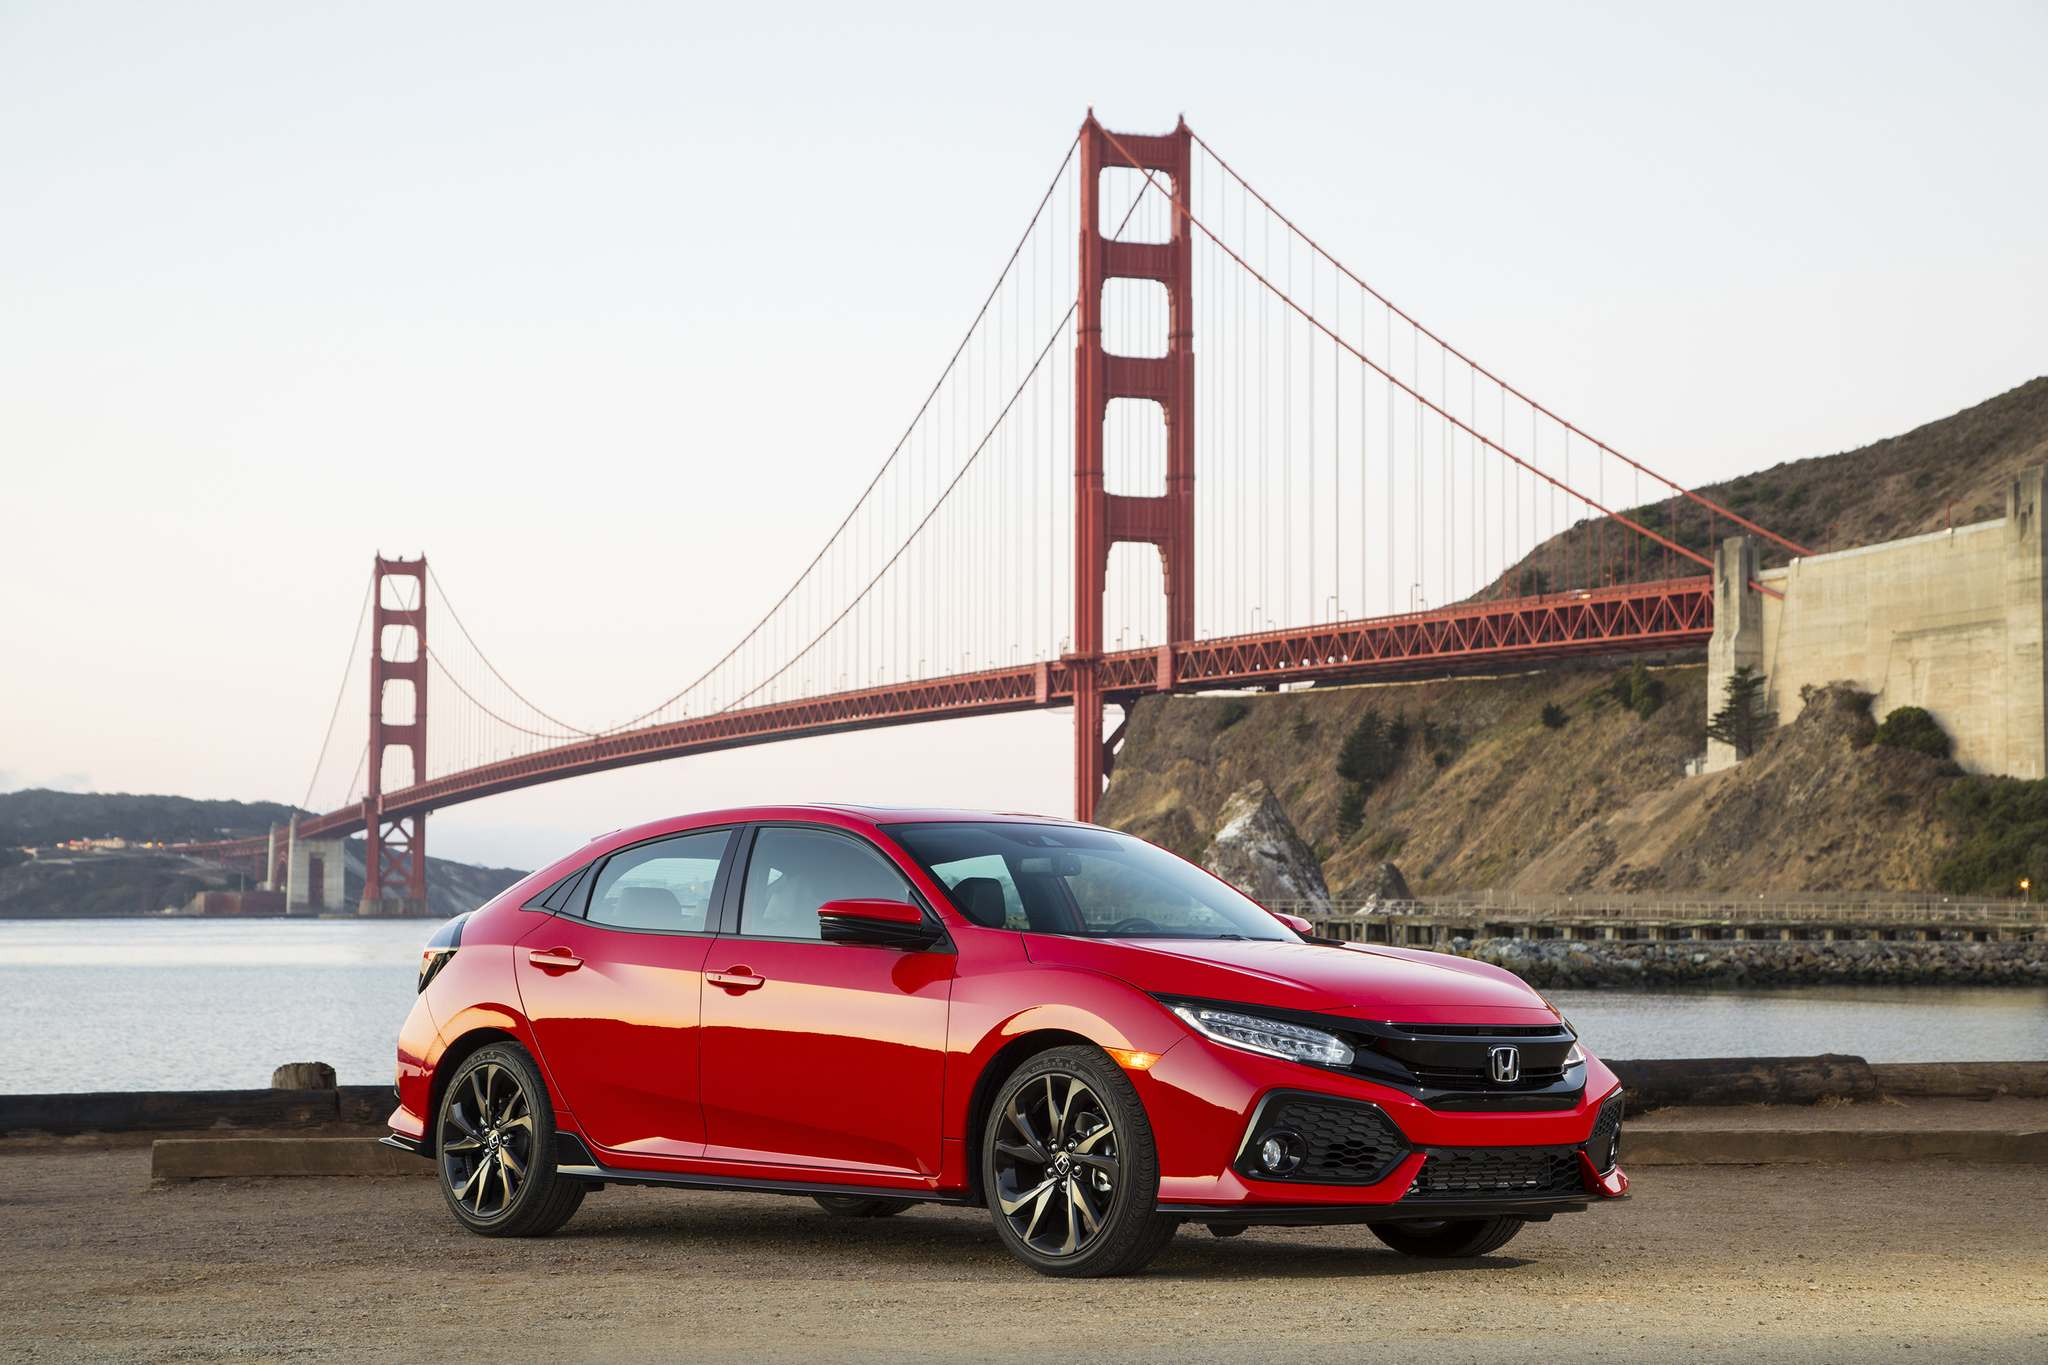 Photos by HondaThe 2017 Honda Civic Hatchback's overall proportions are likeable and more appealing than the sedan.